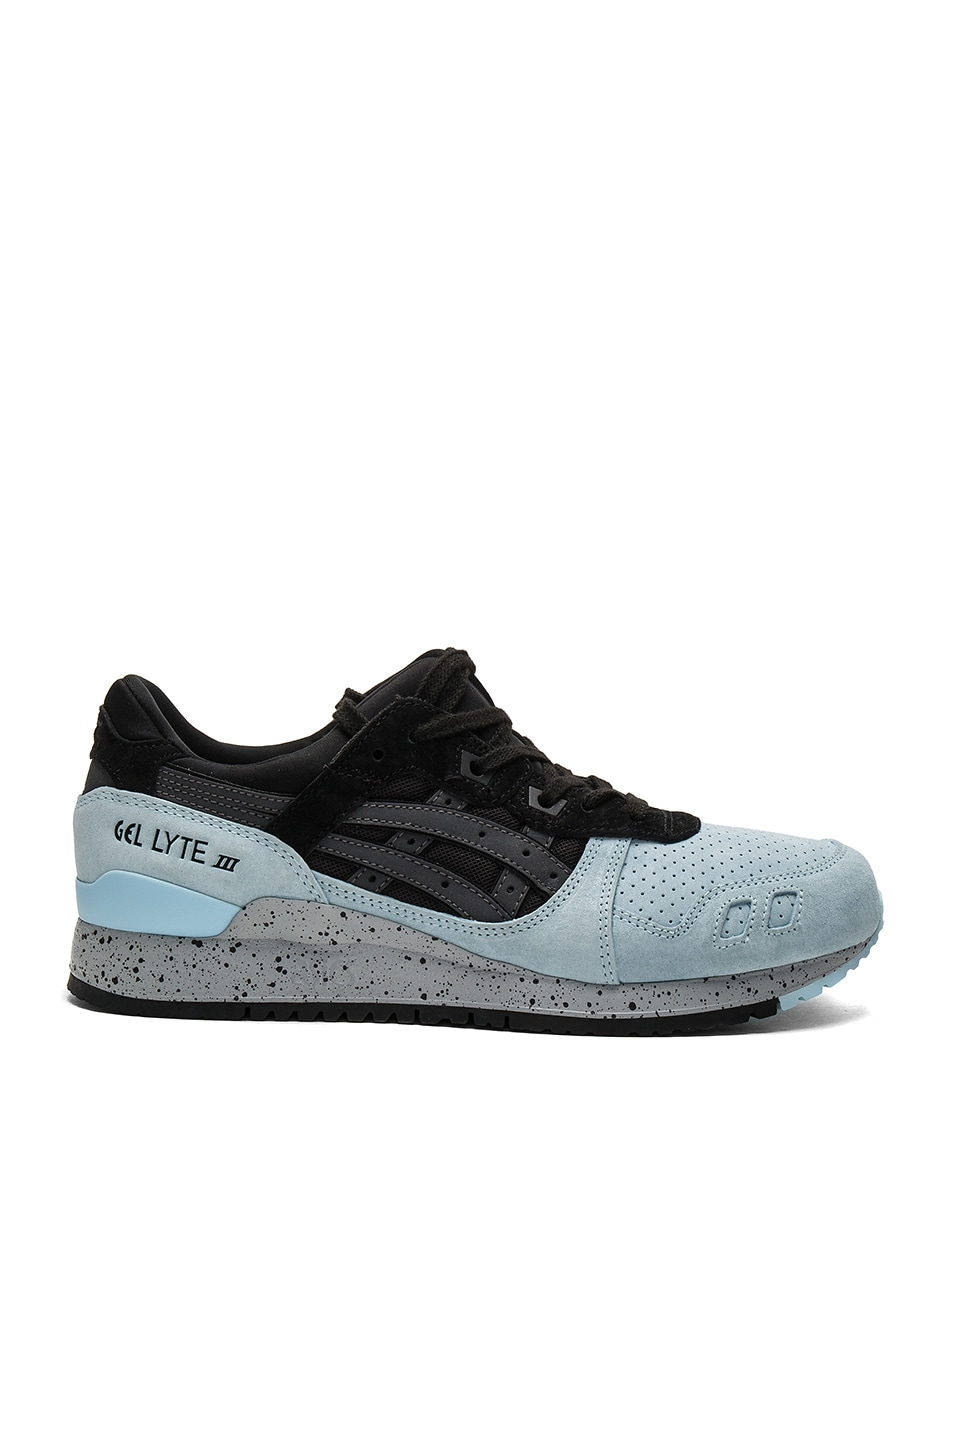 Gel Lyte III by Asics Platinum